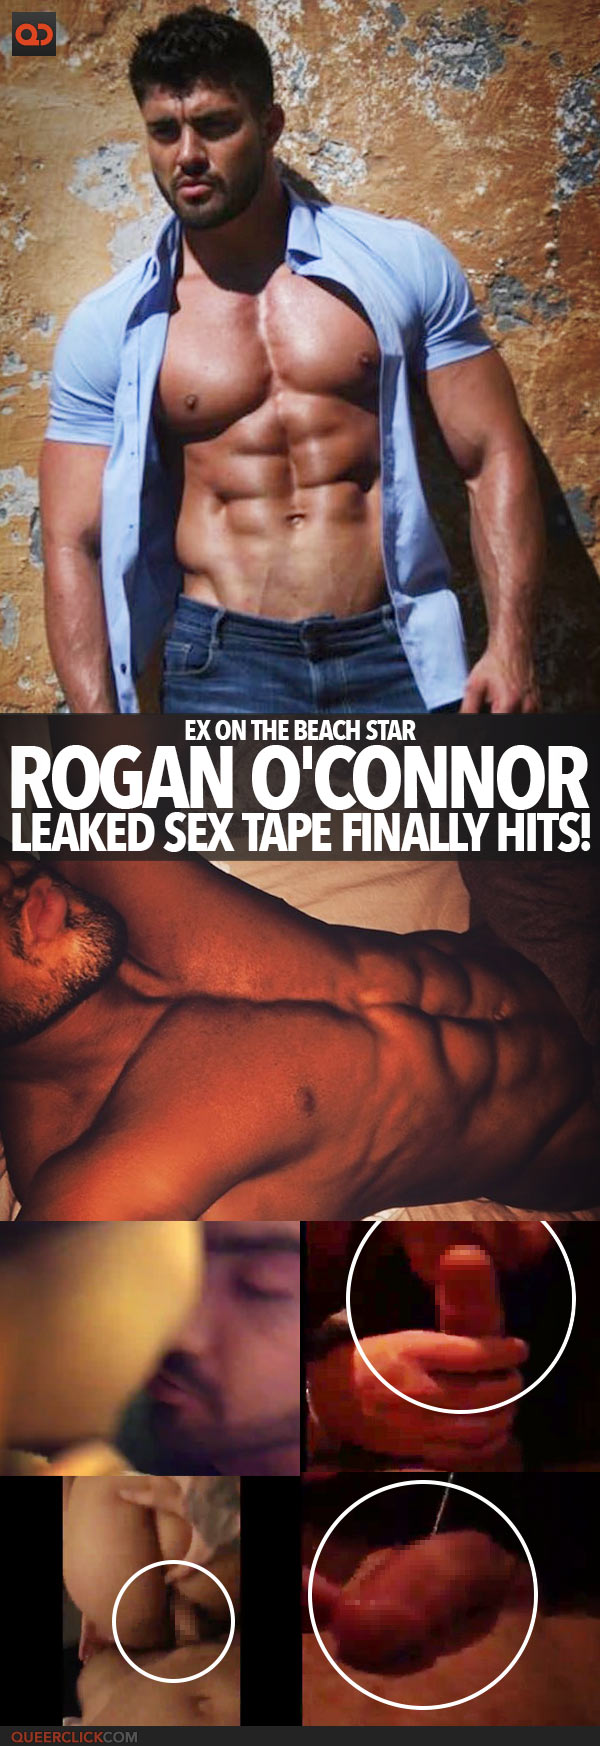 Rogan O'Connor, Ex On The Beach Star, Leaked Sex Tape Finally Hits!